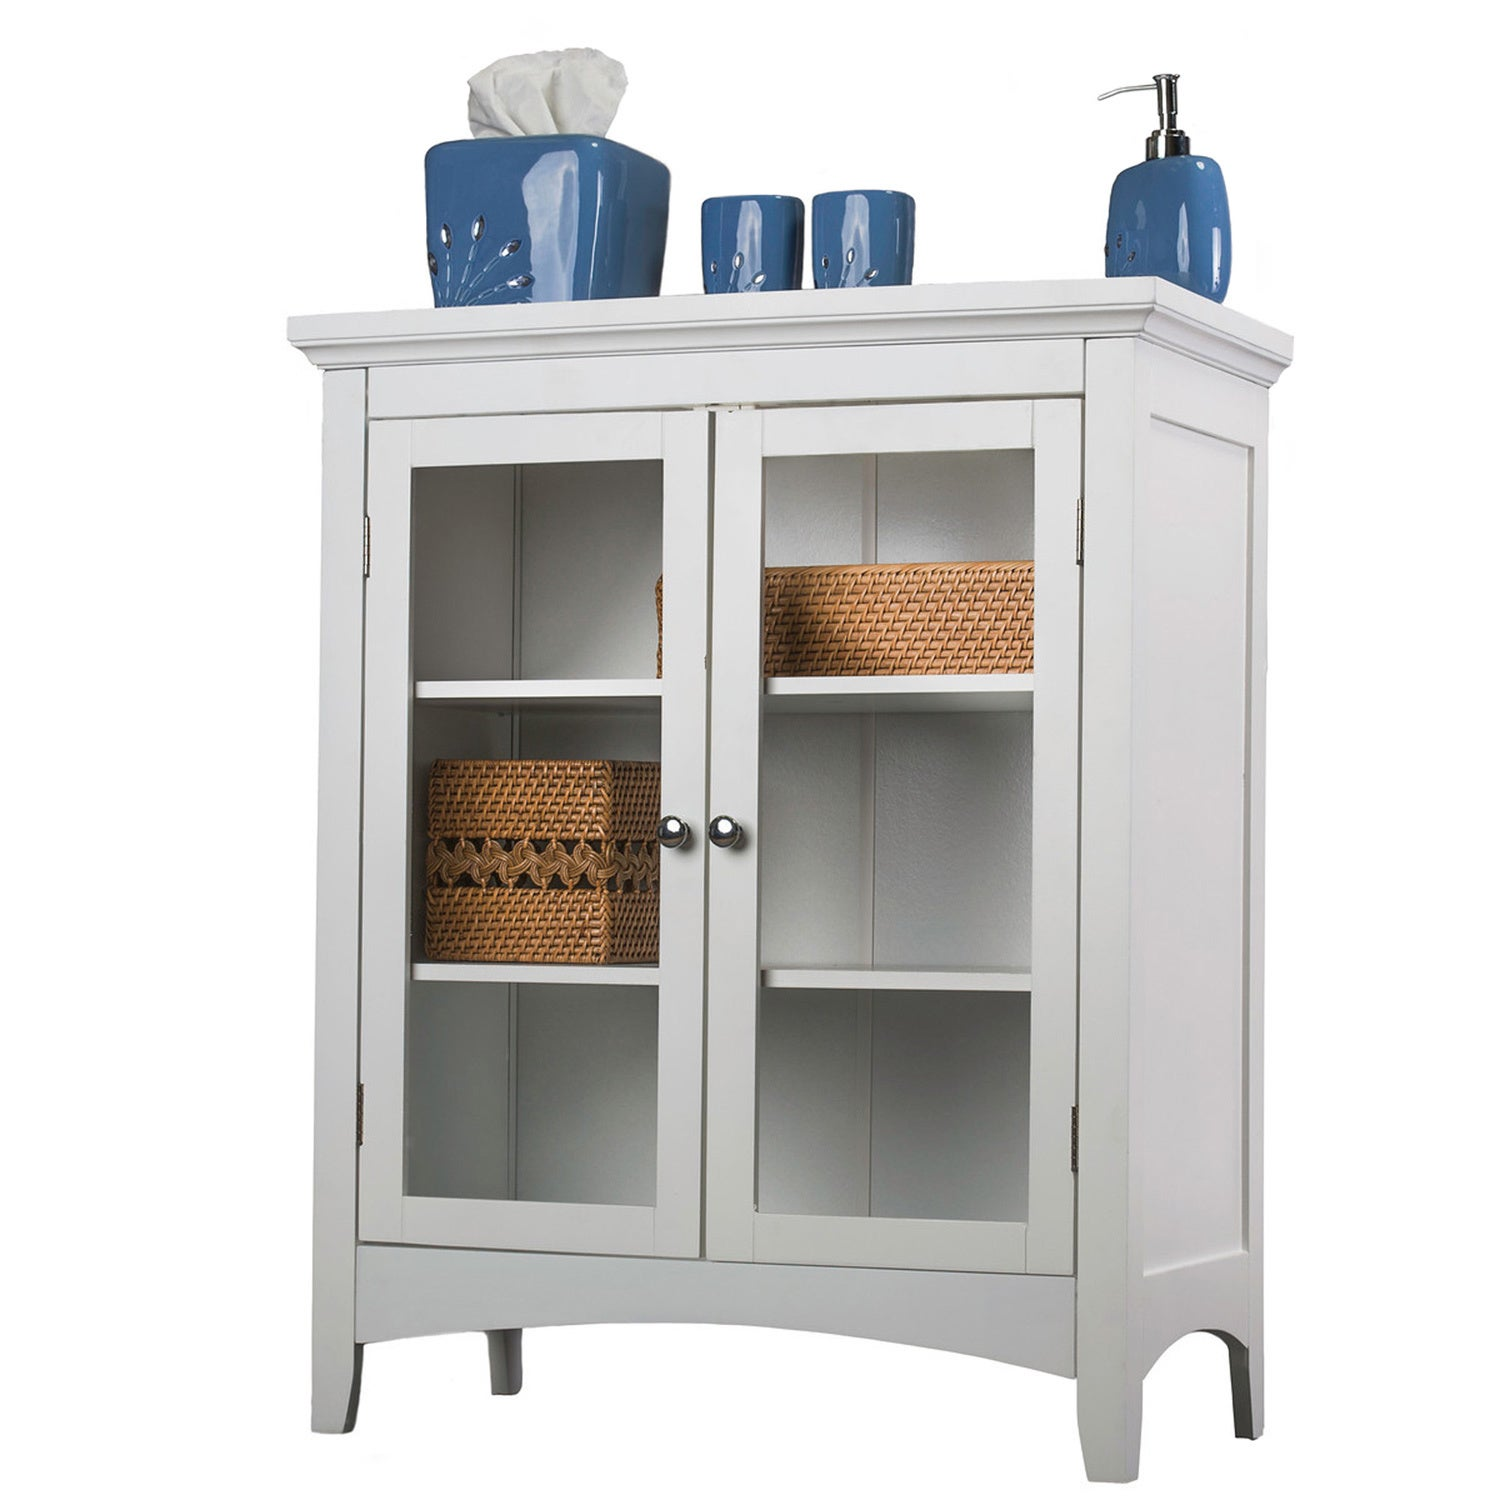 floor cabinet overstock shopping great deals on softline bathroom